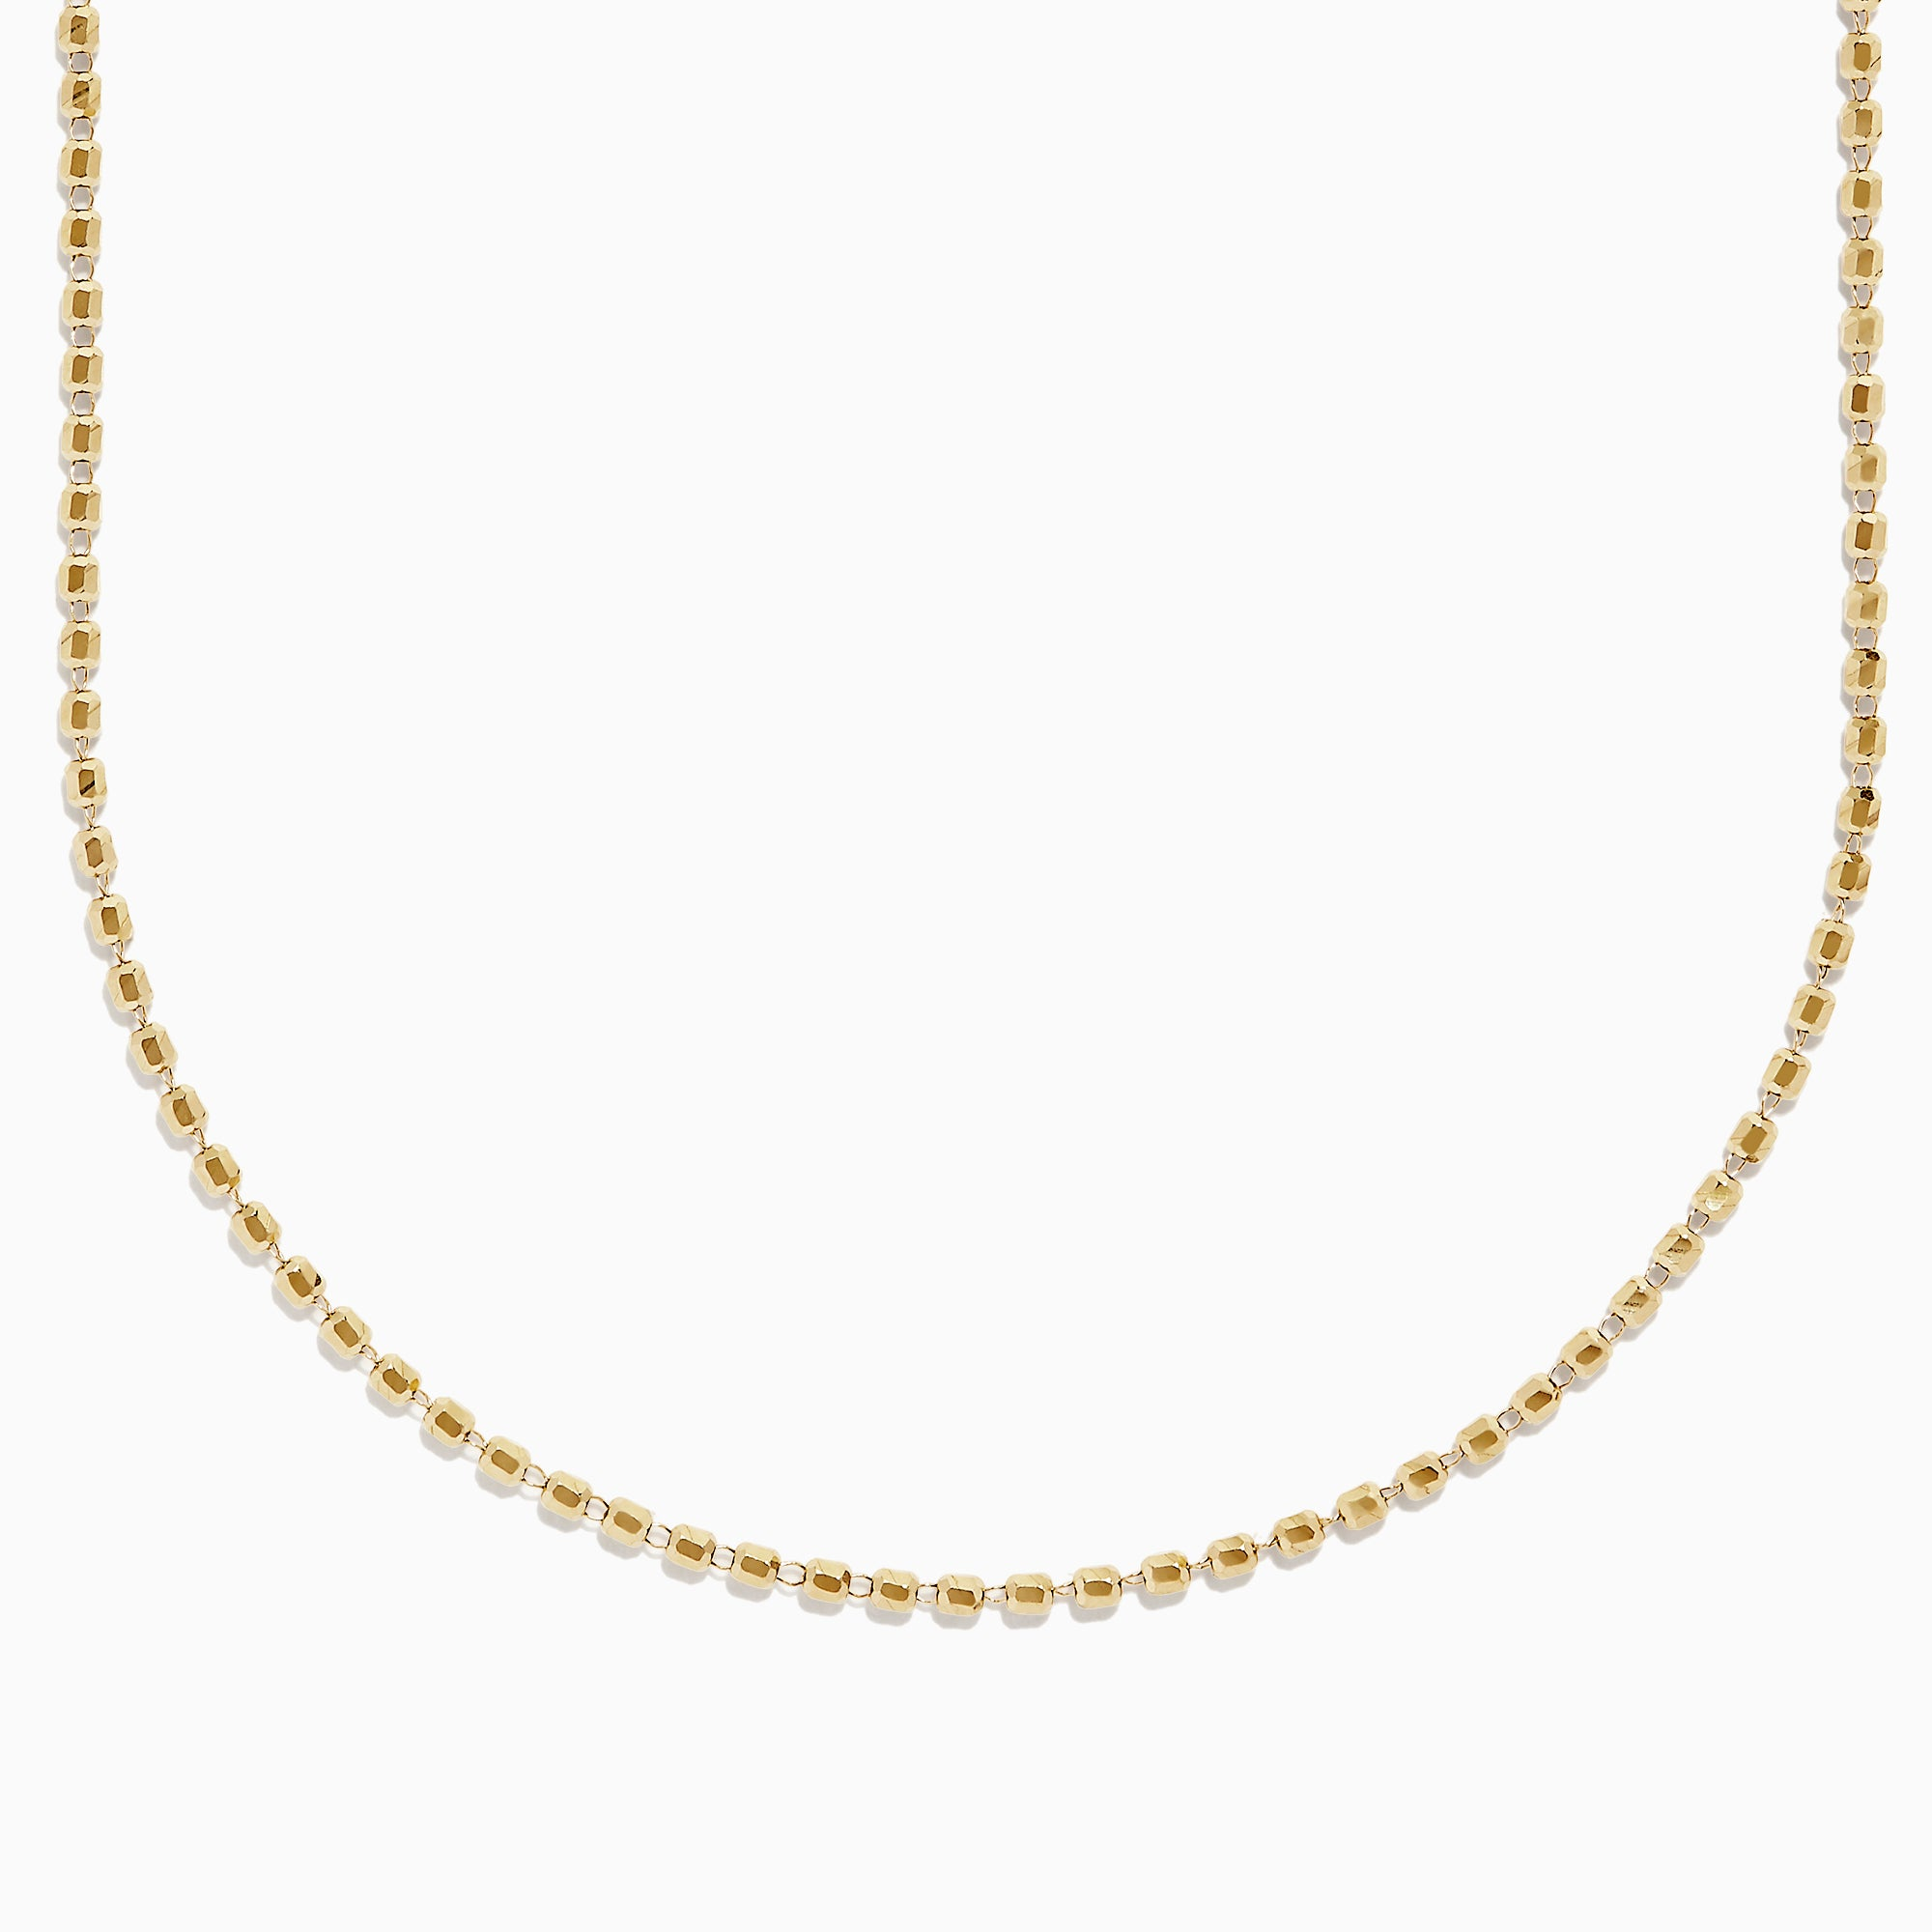 Effy 14K Yellow Gold Bead Necklace